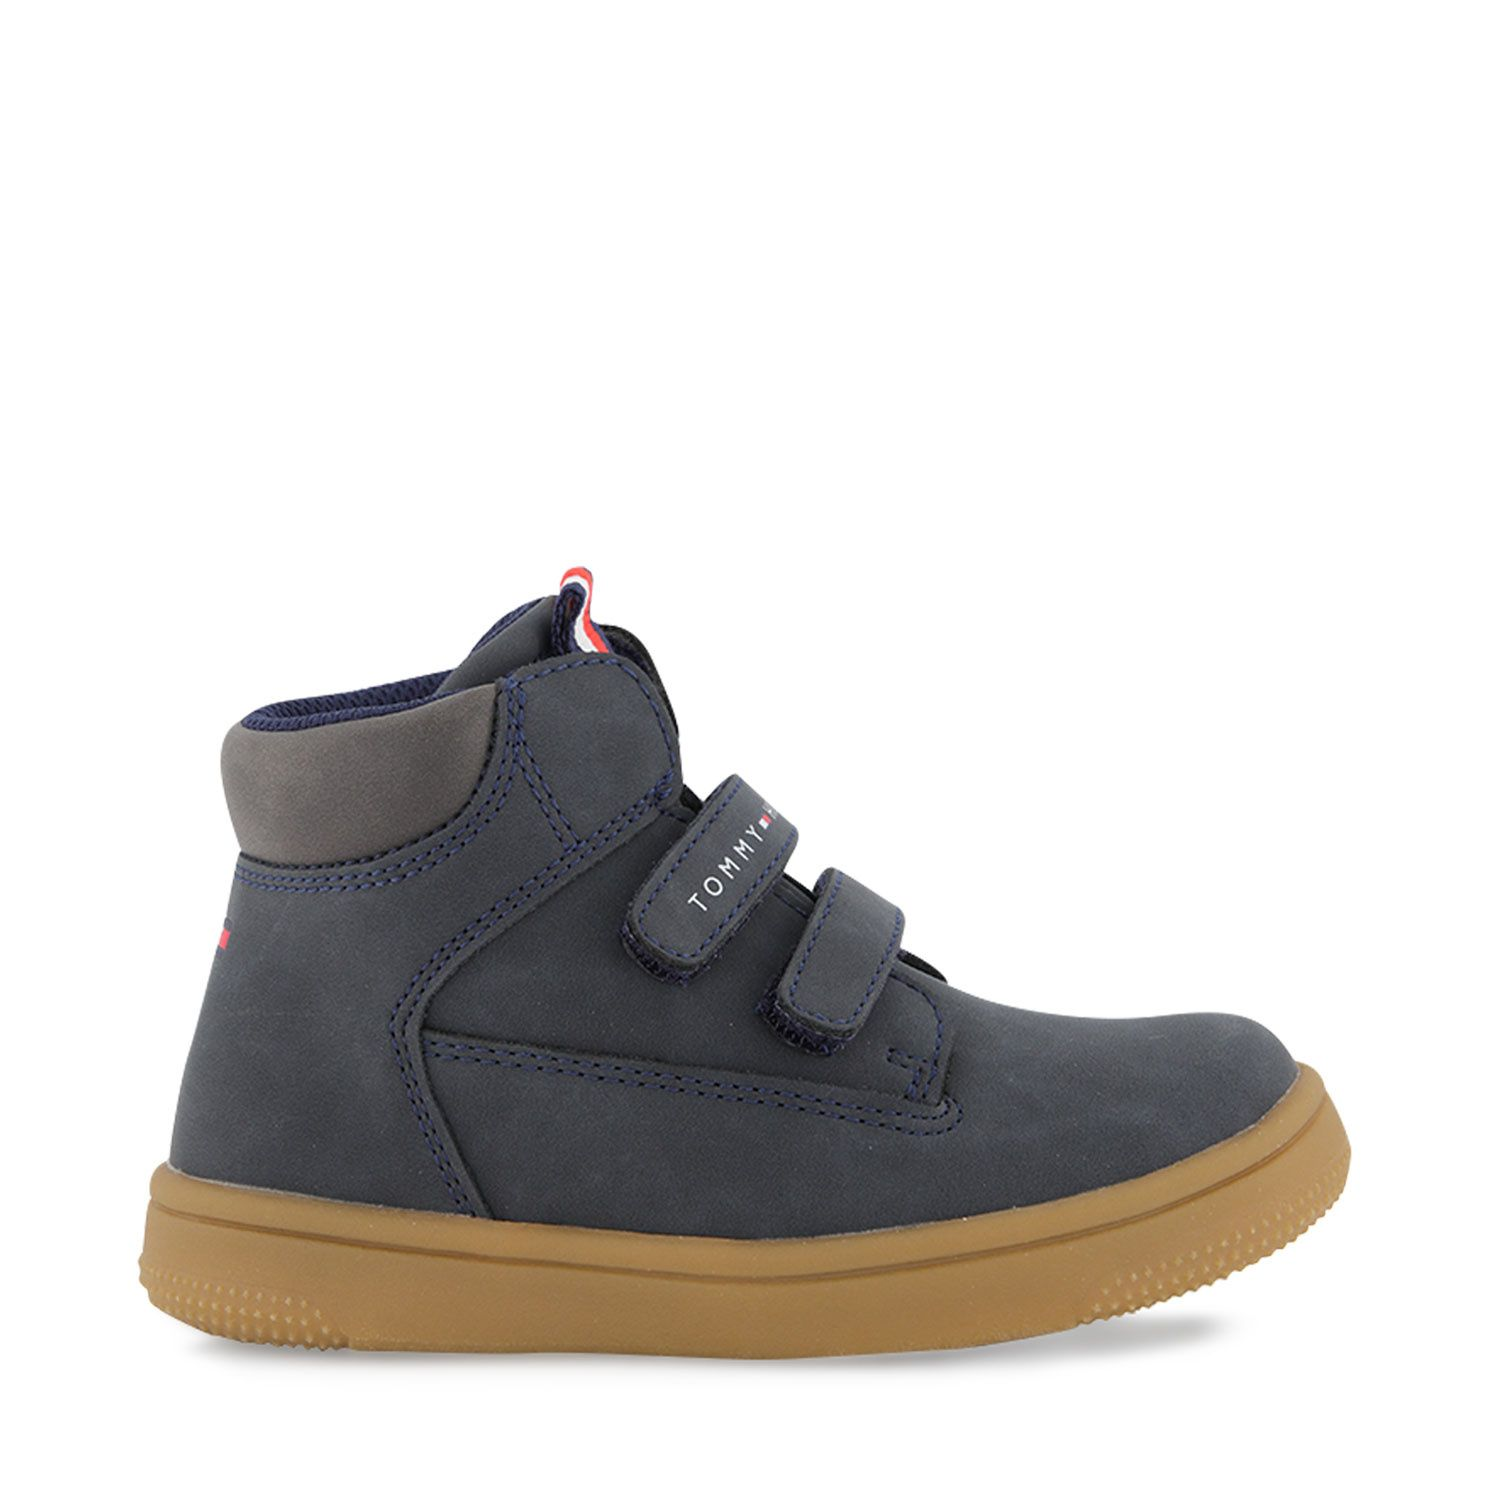 Picture of Tommy Hilfiger 30950 kids shoes navy